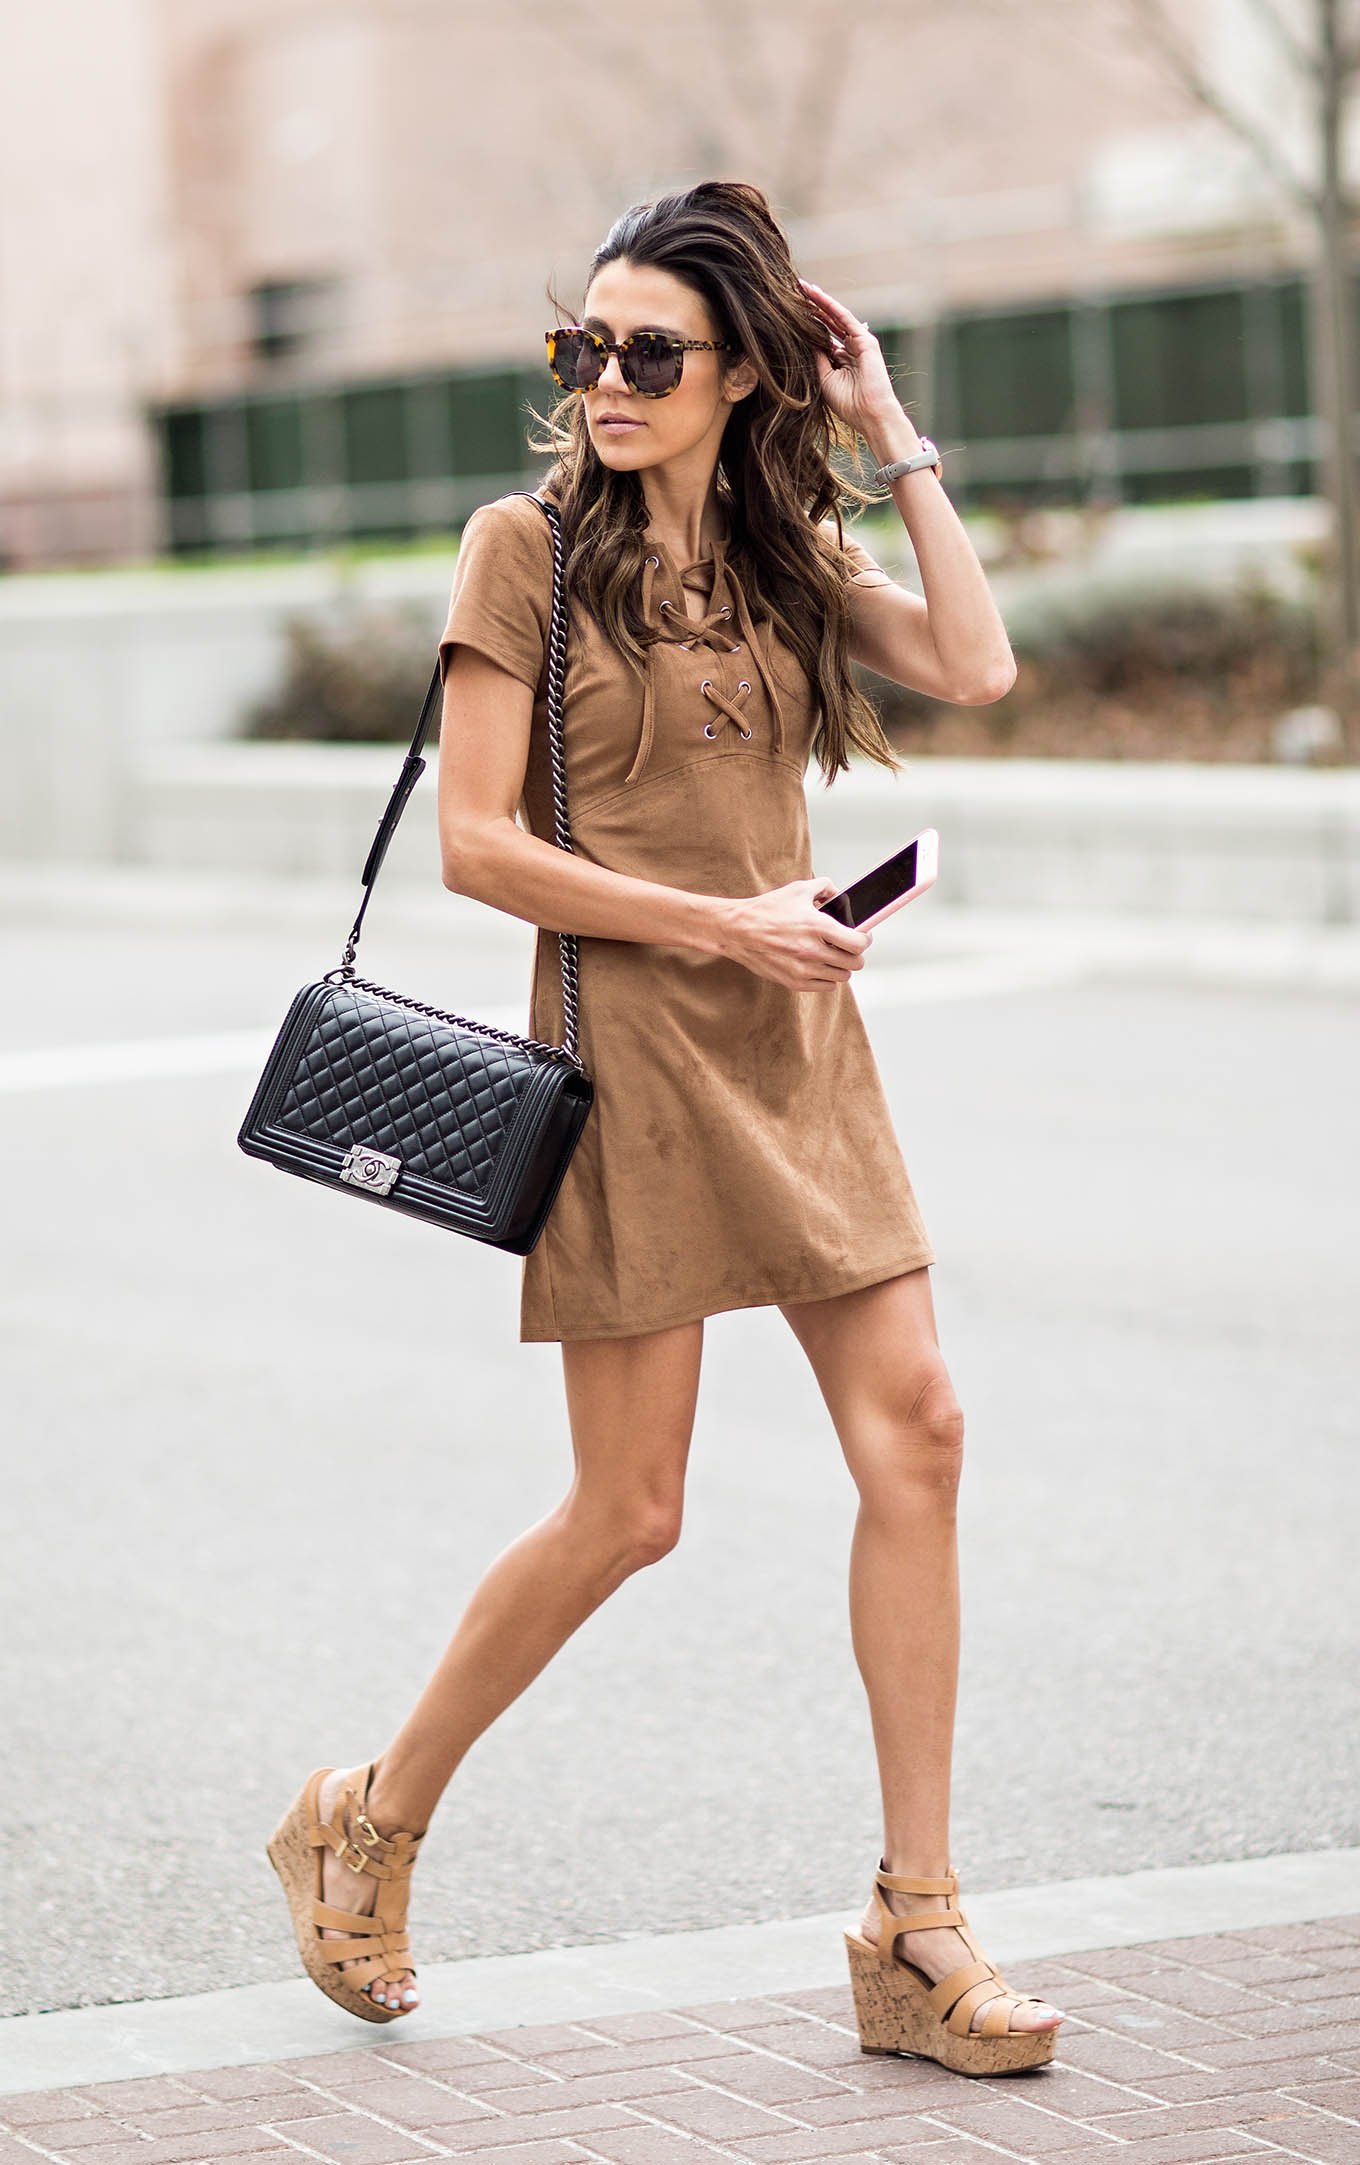 Tan shoes with black dress